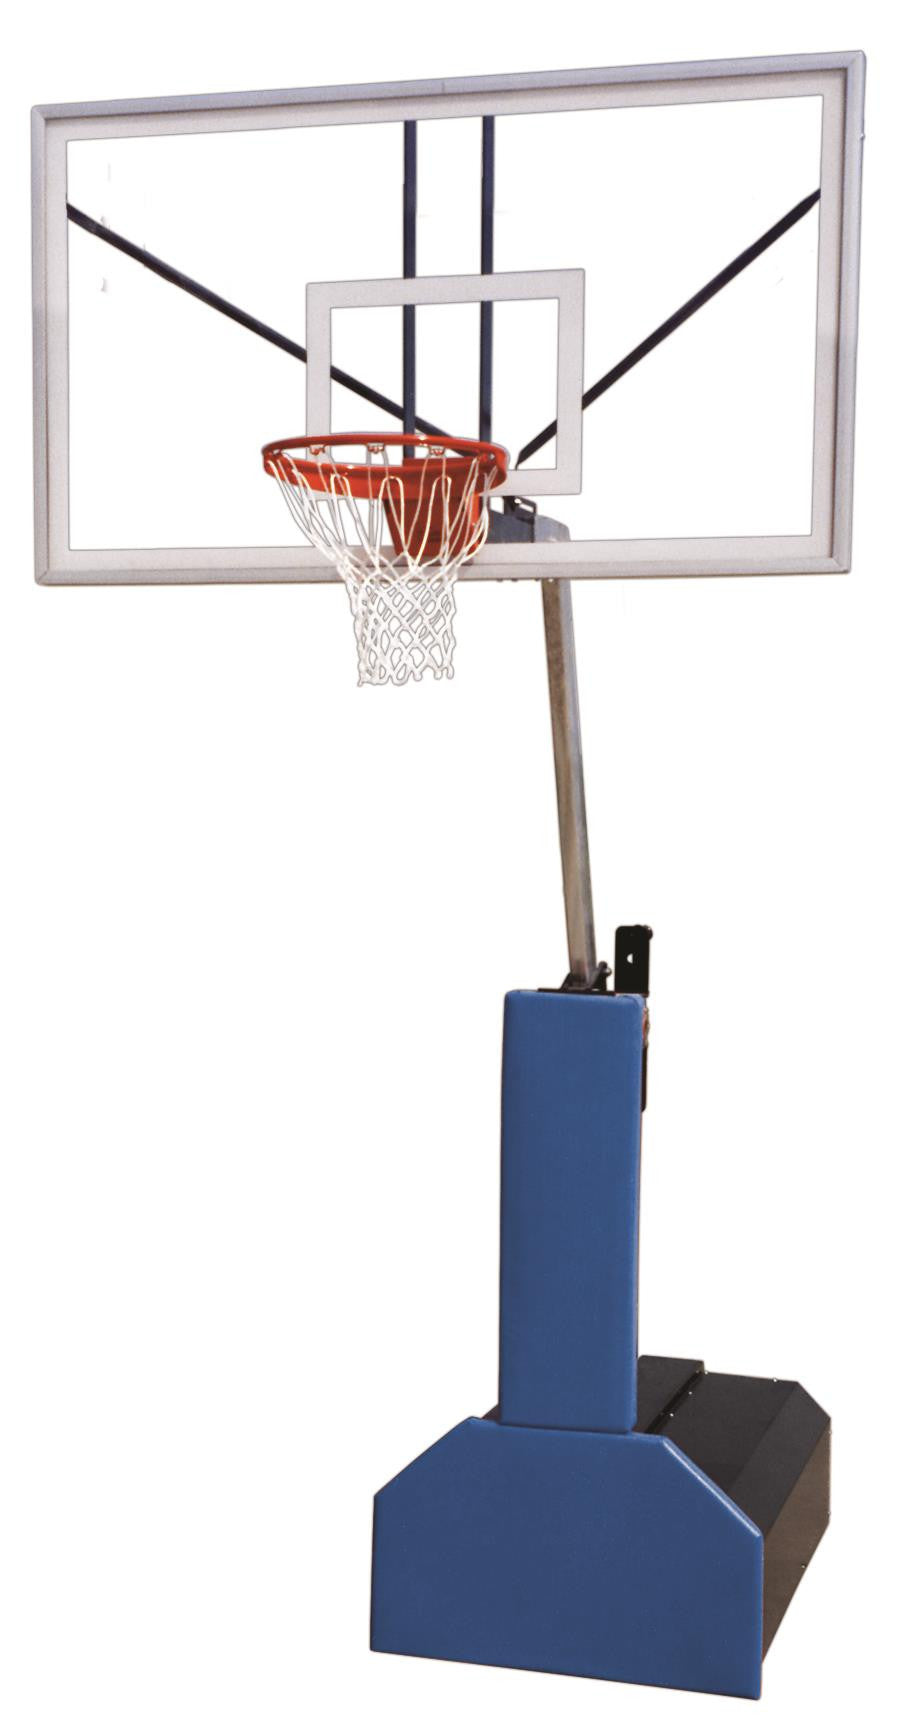 First Team Thunder Supreme Portable Adjustable Basketball Hoop 72 inch Acrylic